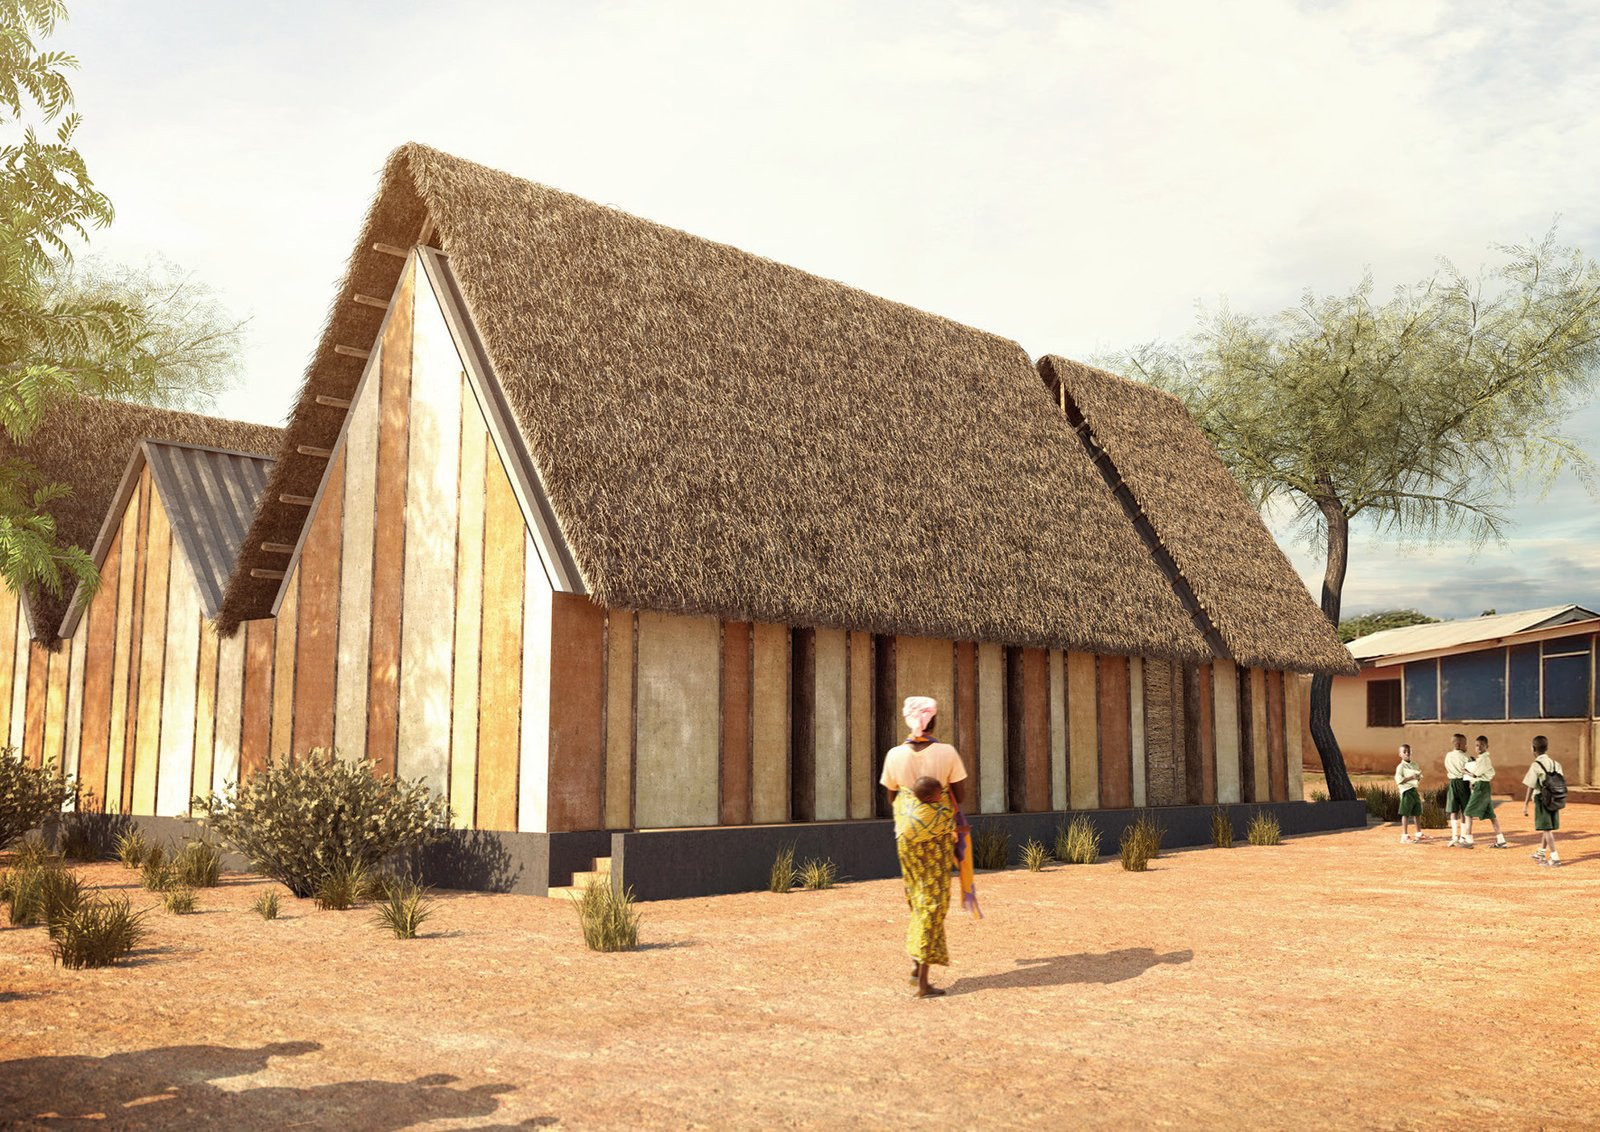 Modern mud homes a new take on building in ghana collection of 6 photos by patrick sisson dwell